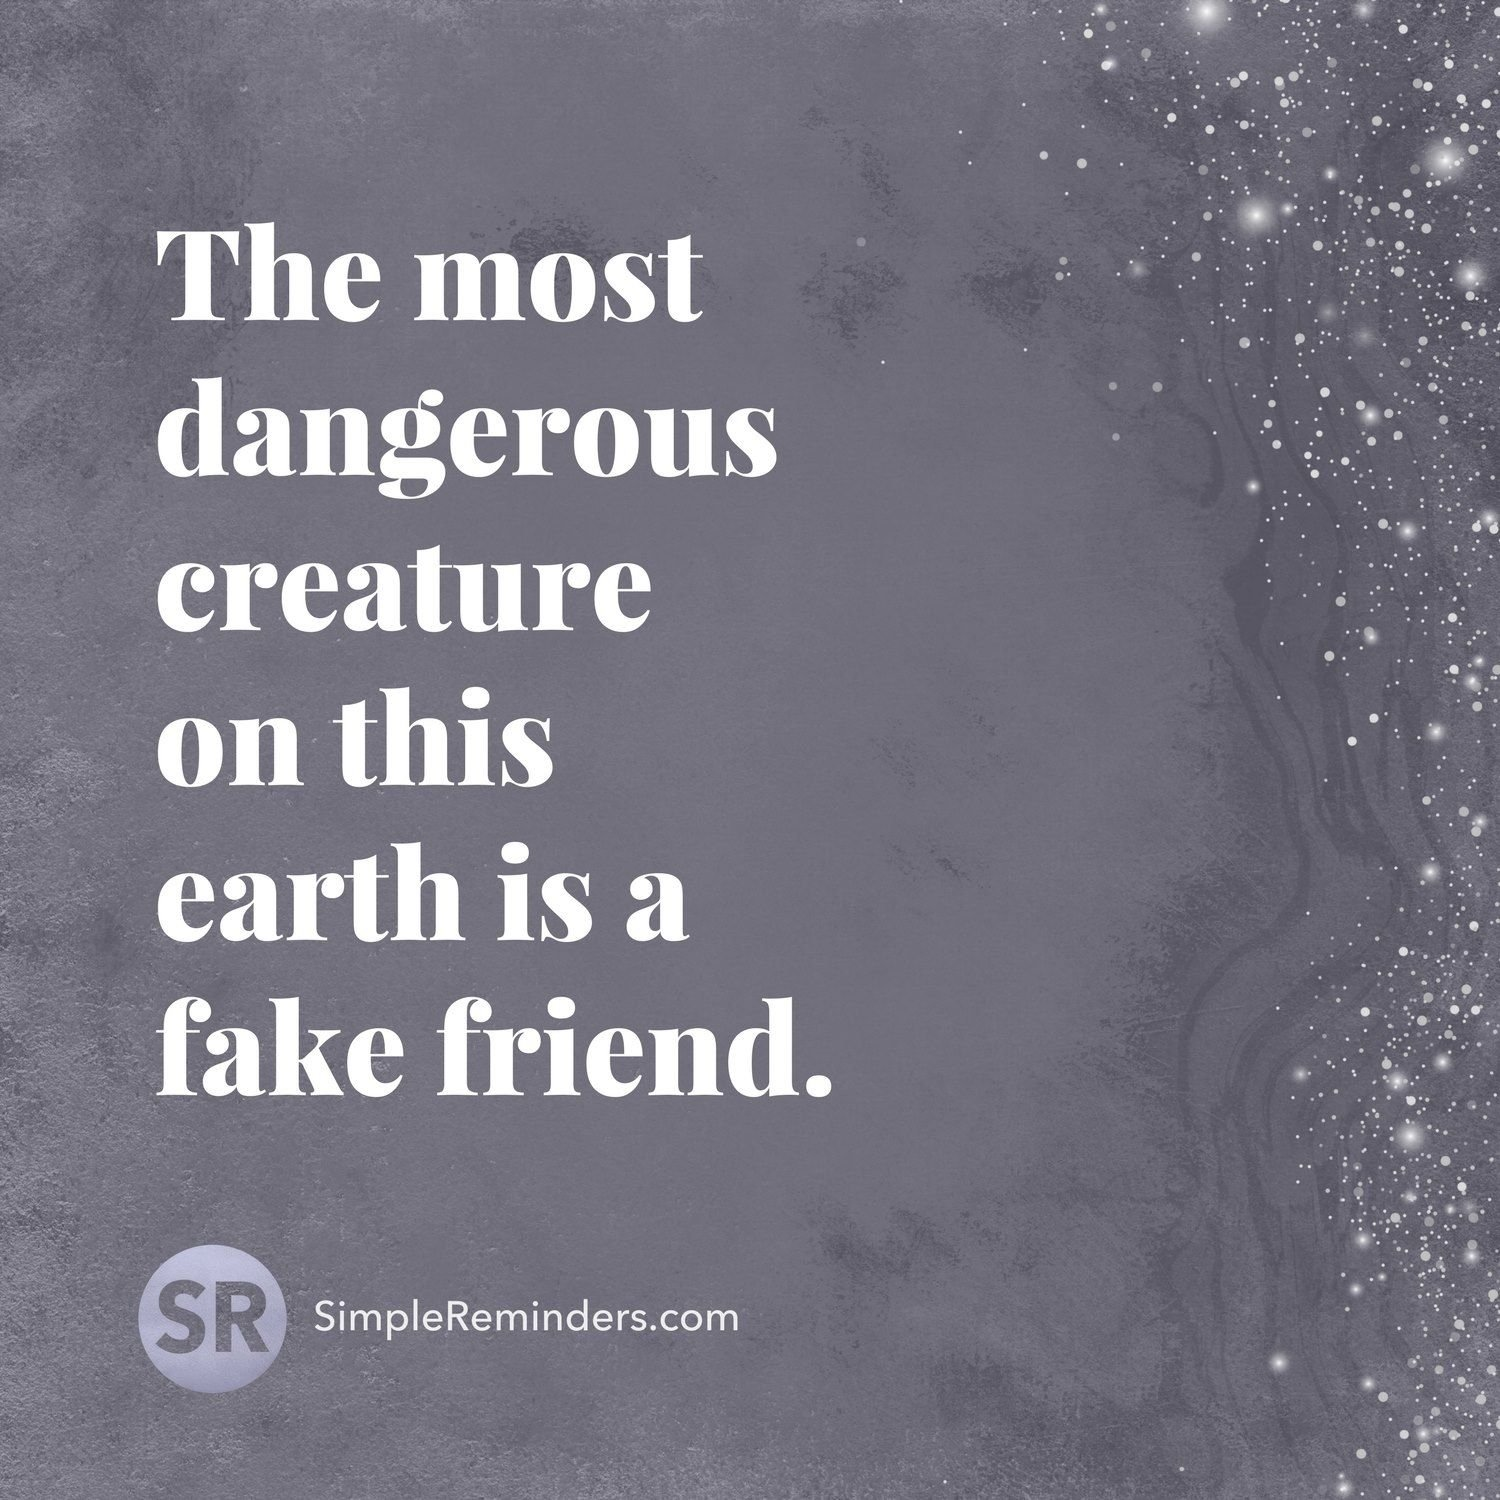 10 Pretty Revenge Ideas On Backstabbing Friends the most dangerous creature on this earth is a fake friend sr 2020